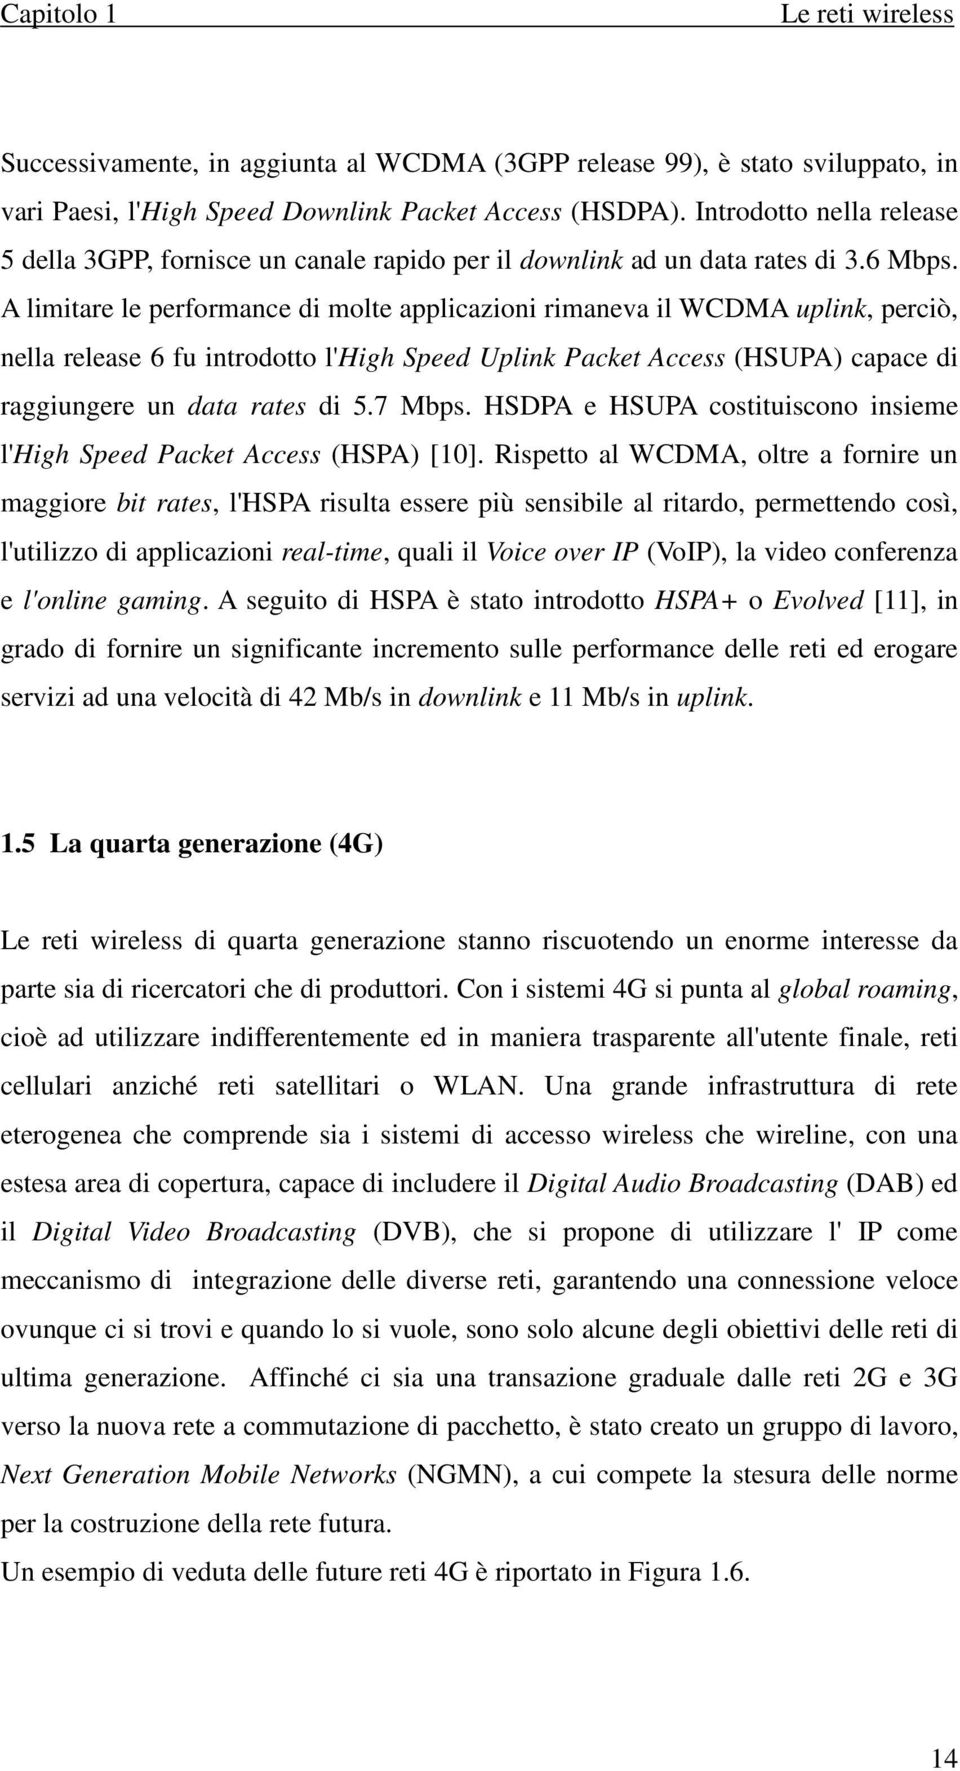 A limitare le performance di molte applicazioni rimaneva il WCDMA uplink, perciò, nella release 6 fu introdotto l'high Speed Uplink Packet Access (HSUPA) capace di raggiungere un data rates di 5.